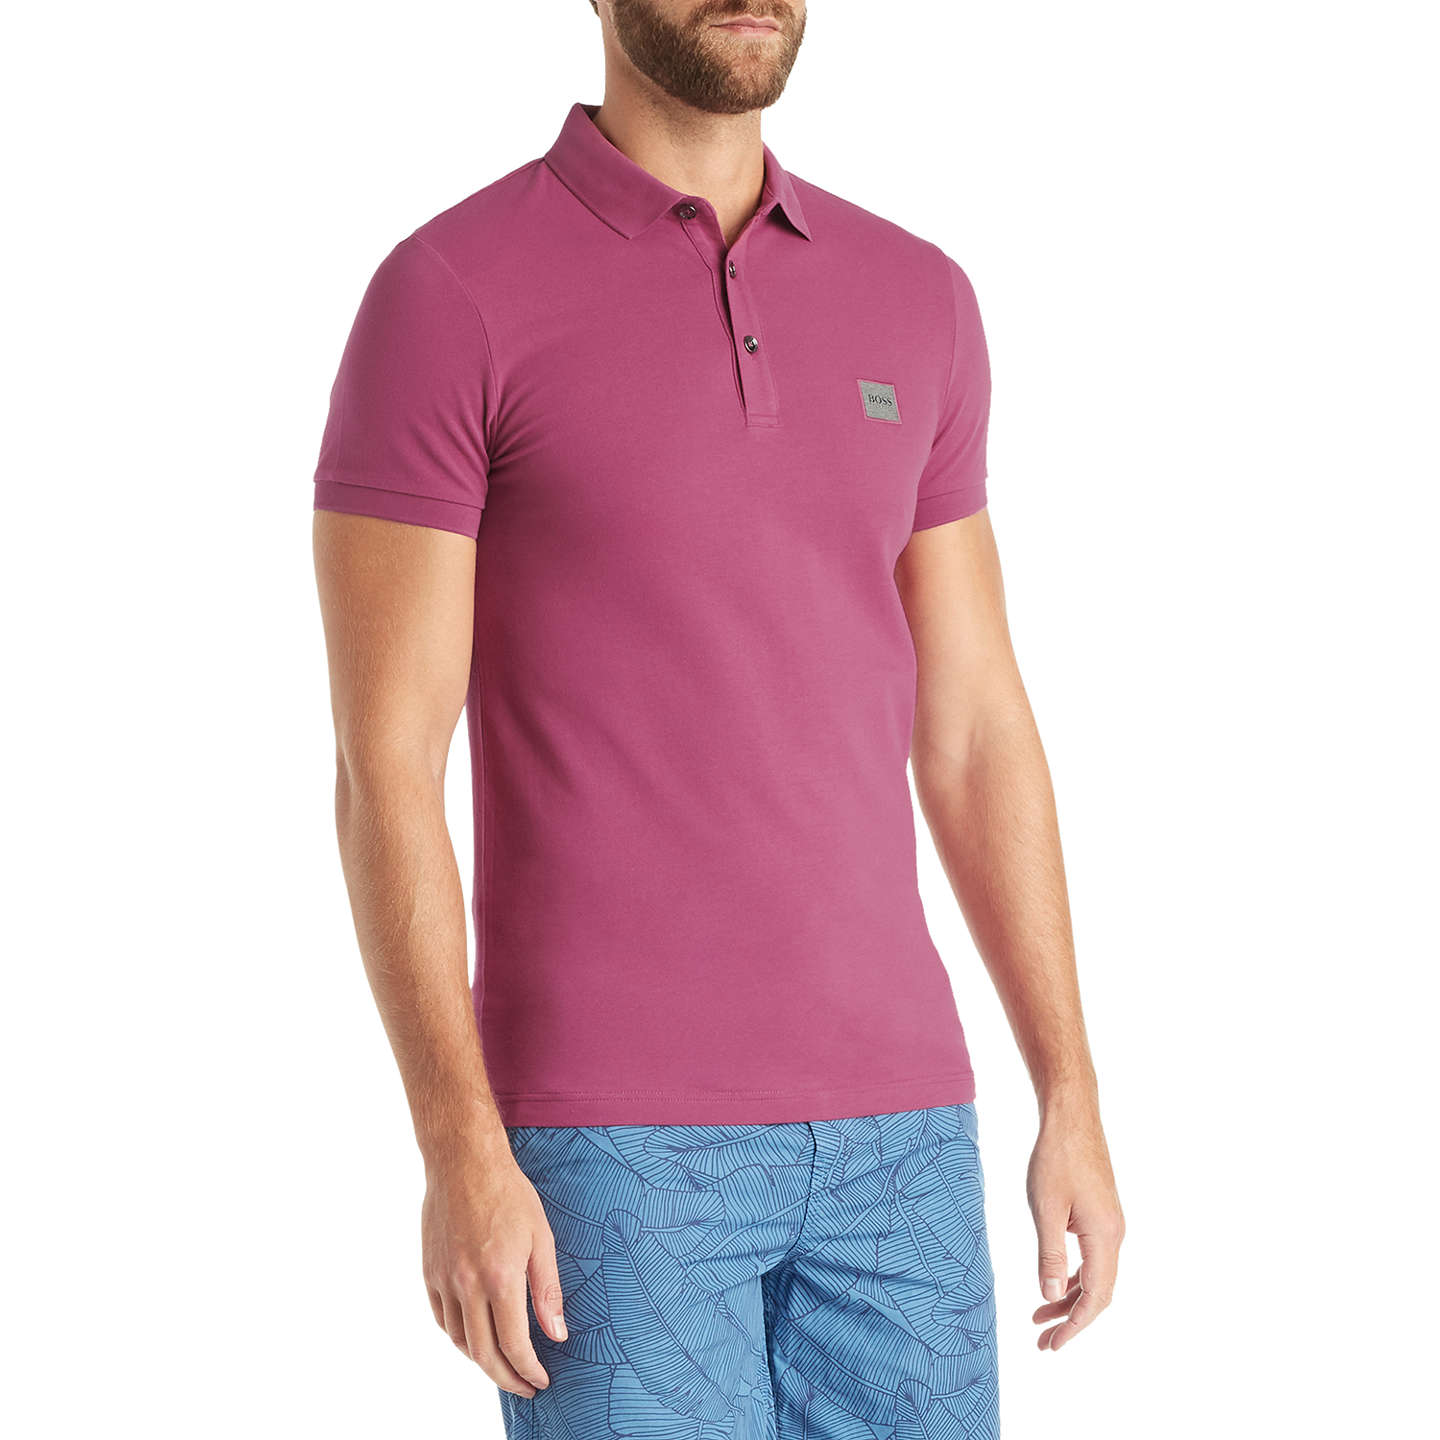 BuyBOSS Passenger Short Sleeve Polo Shirt, Dark Purple, S Online at johnlewis.com